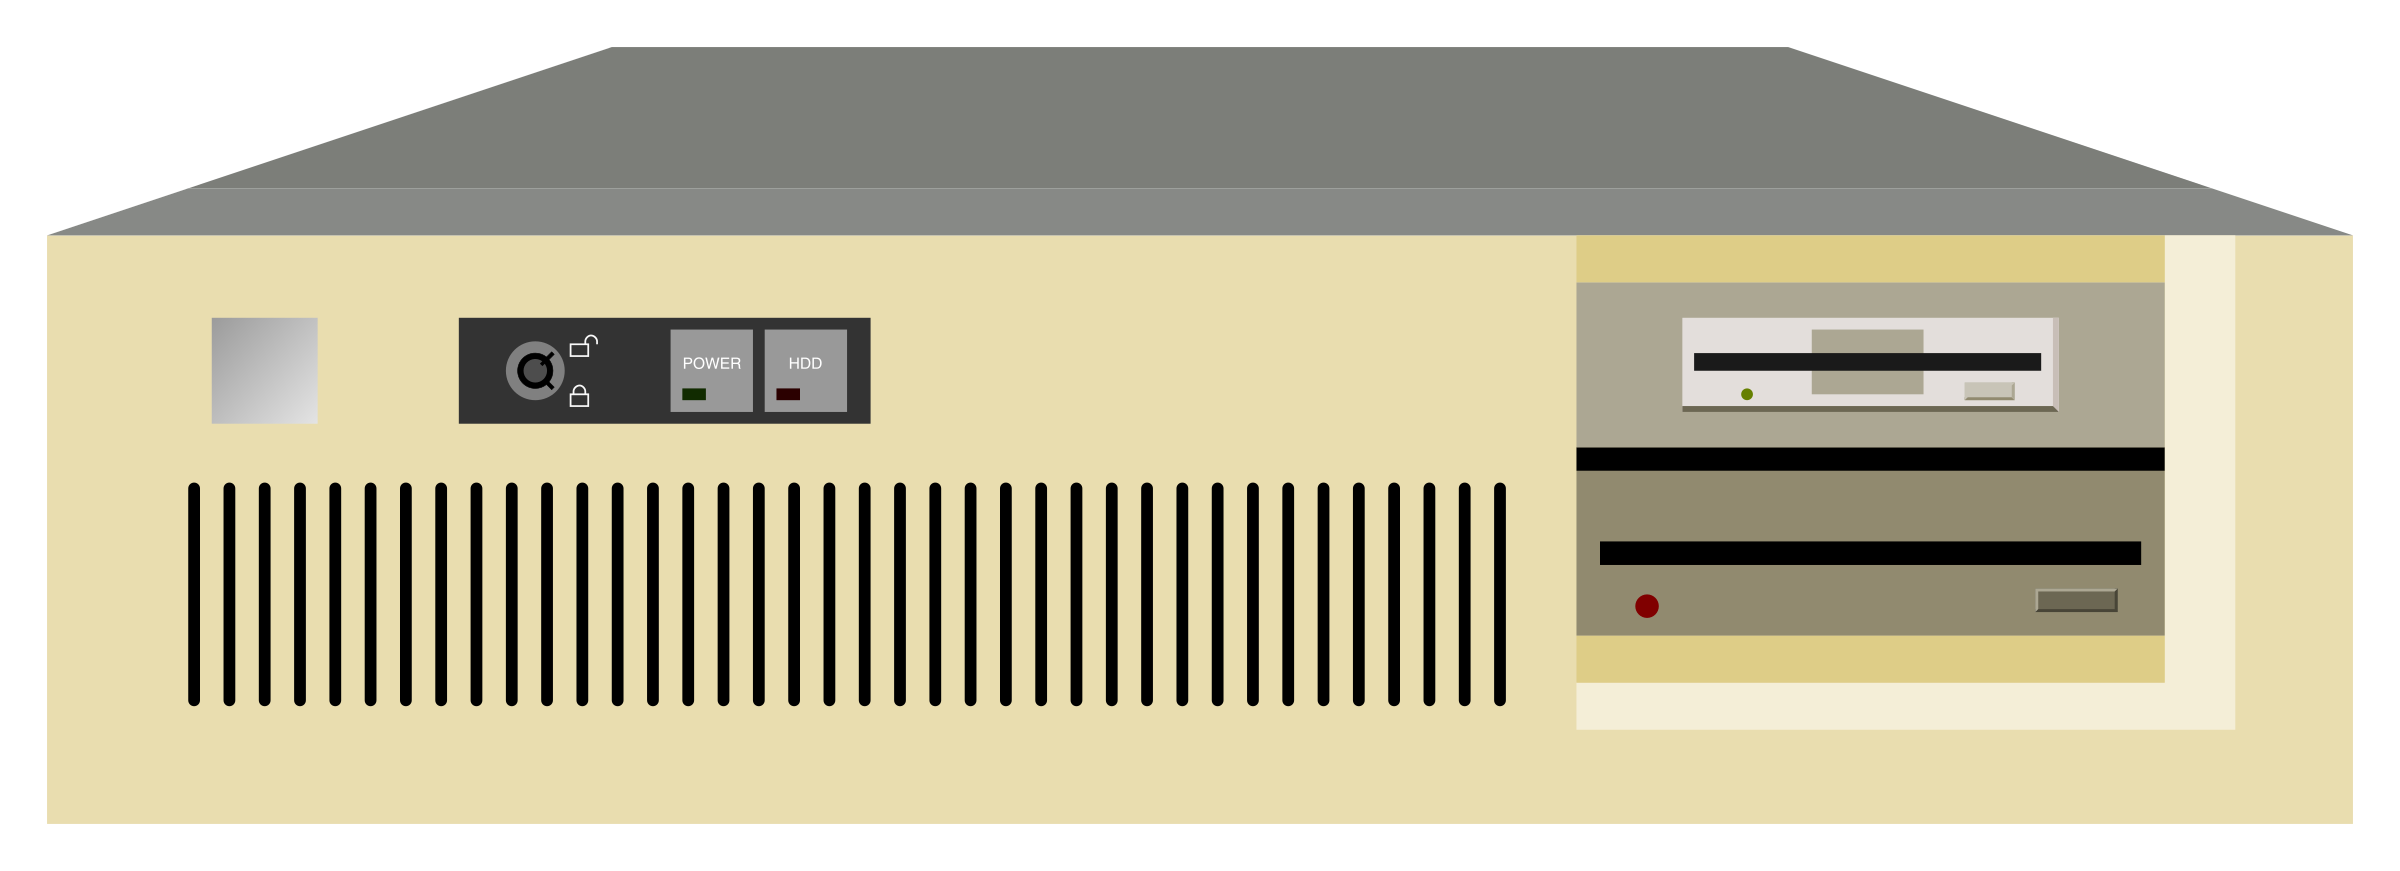 IBM PC AT by jhnri4